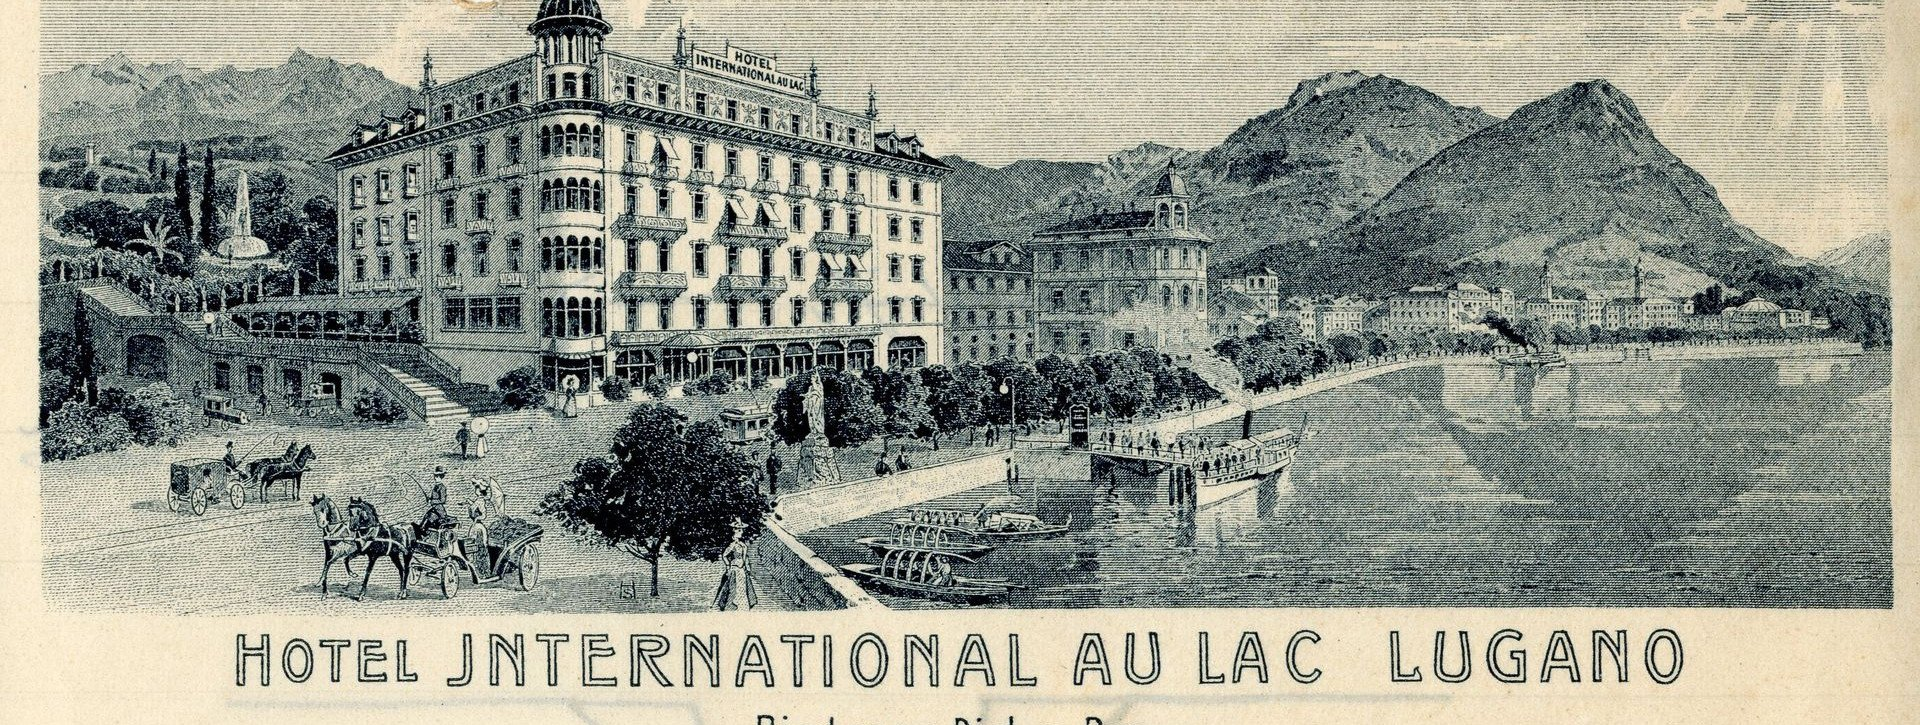 The Hotel International au Lac since 1906